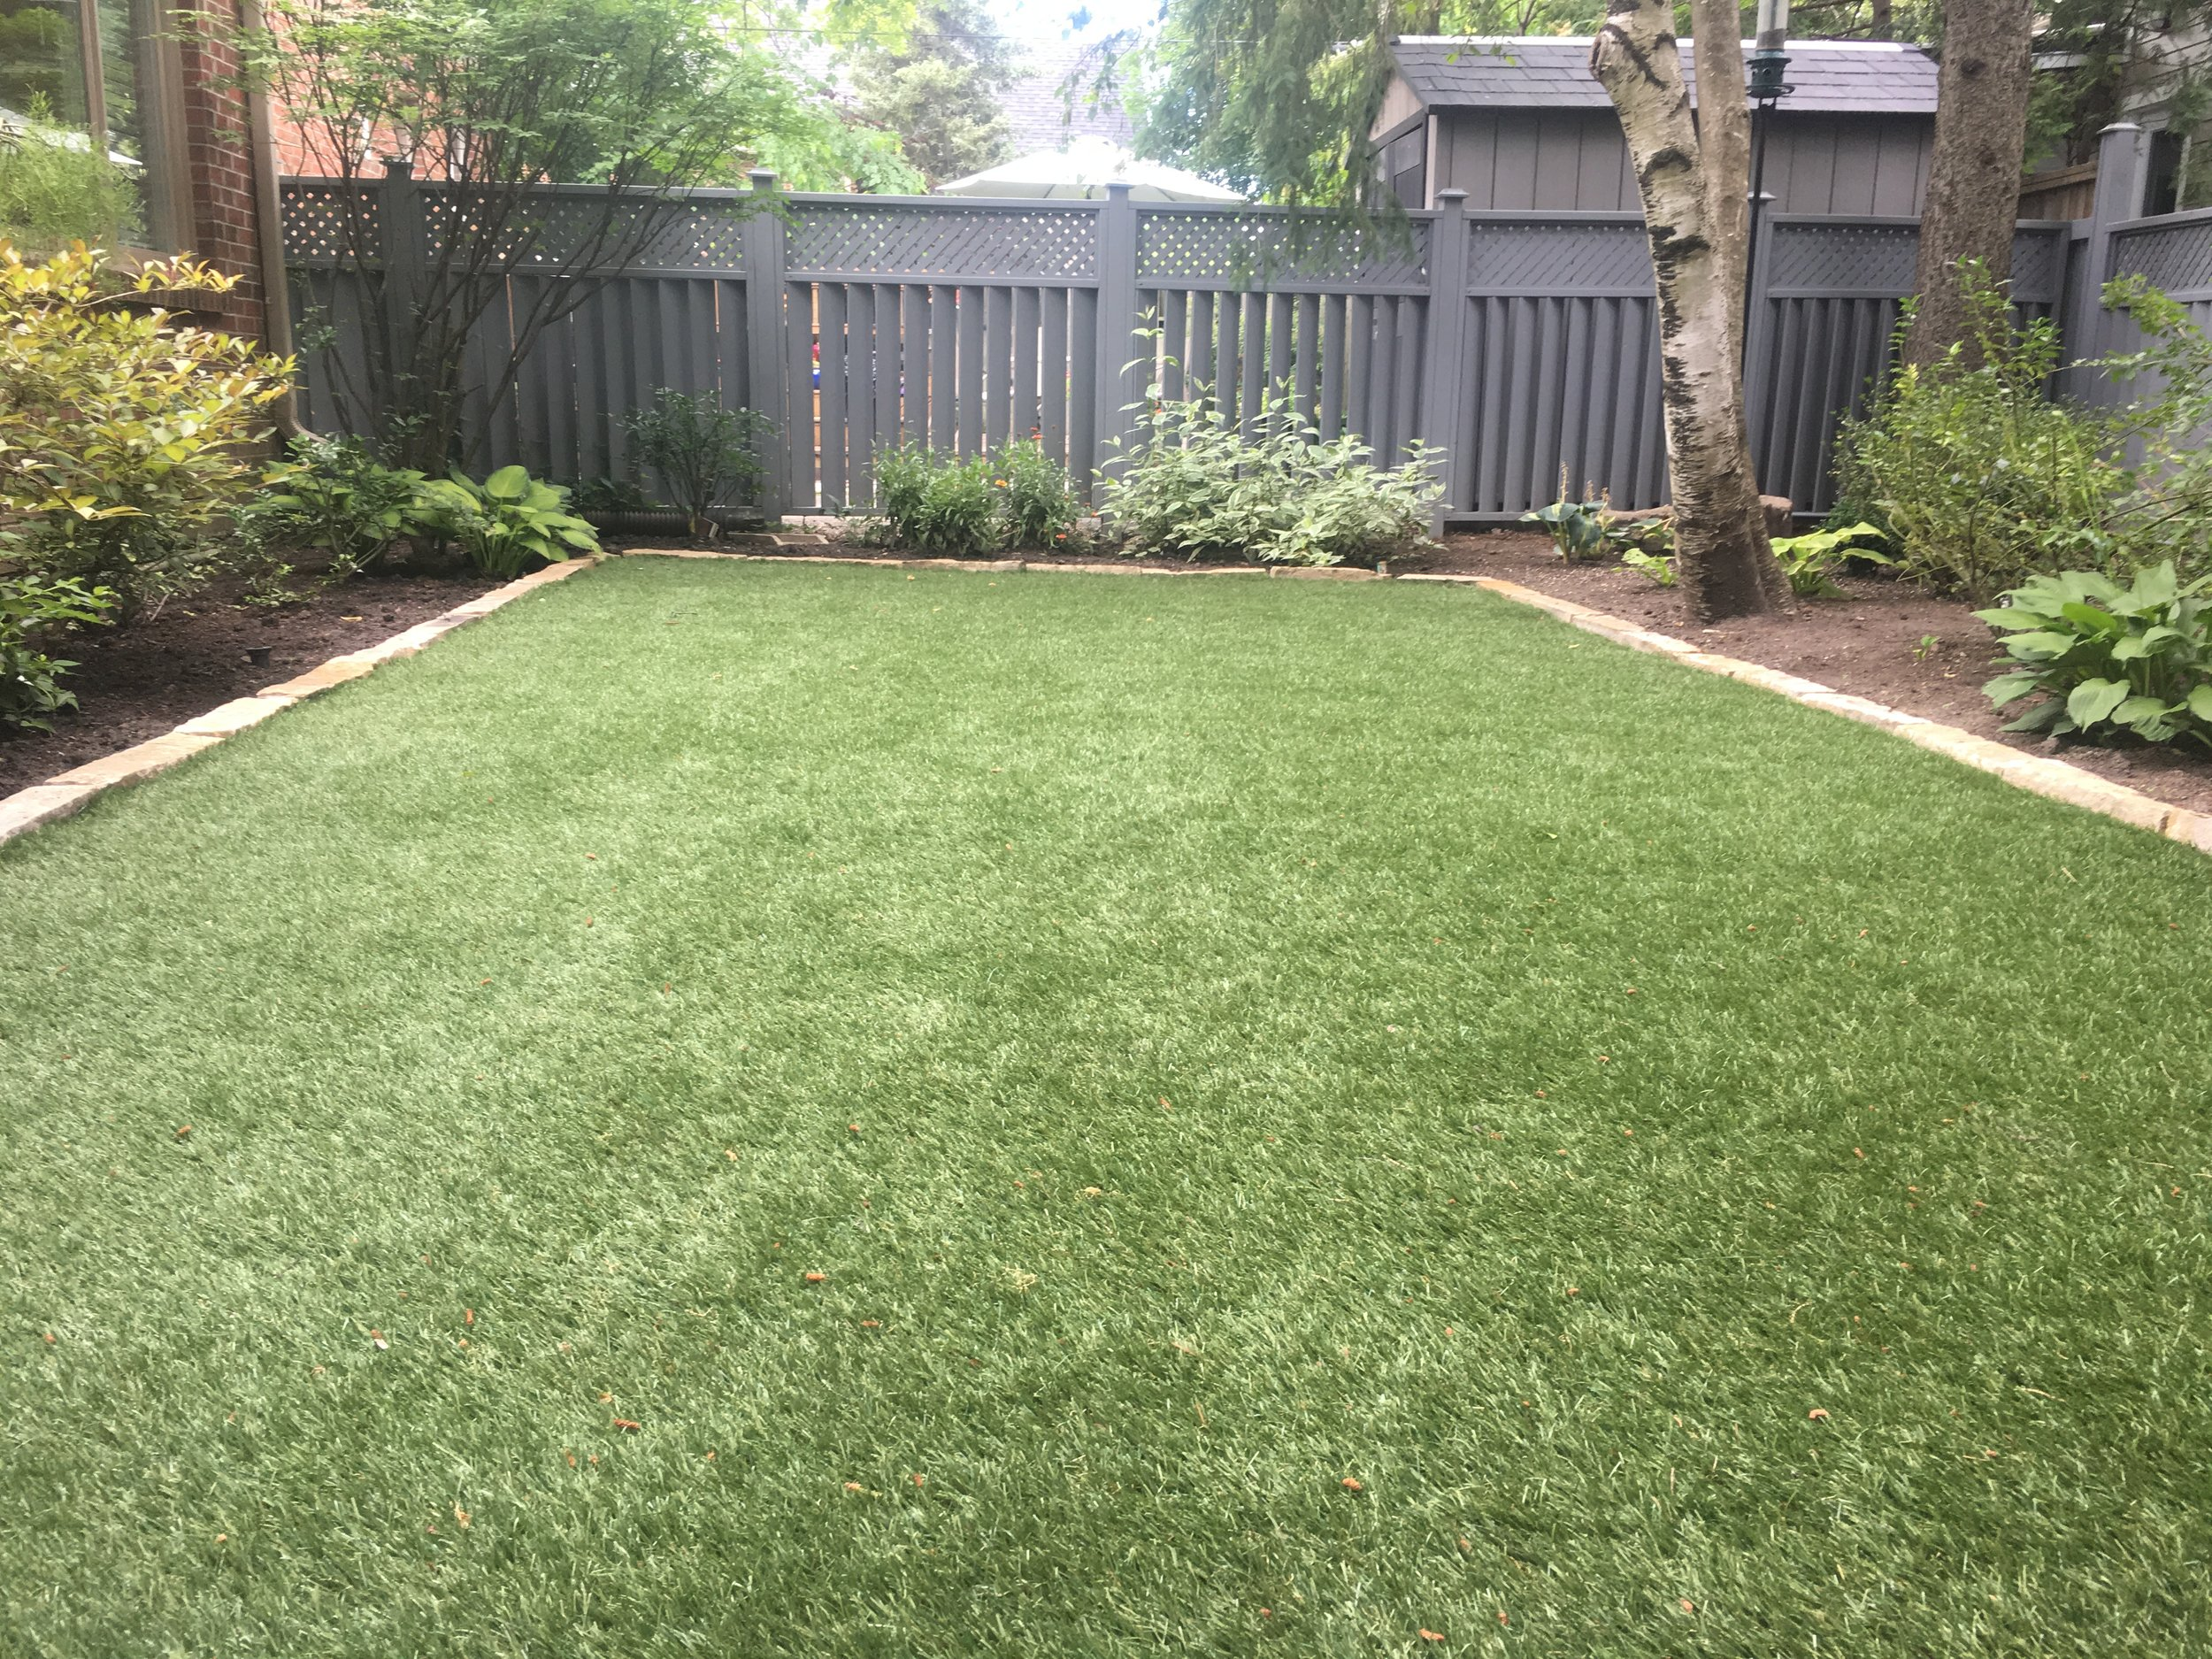 The finished product = a beautifully manicured back yard!